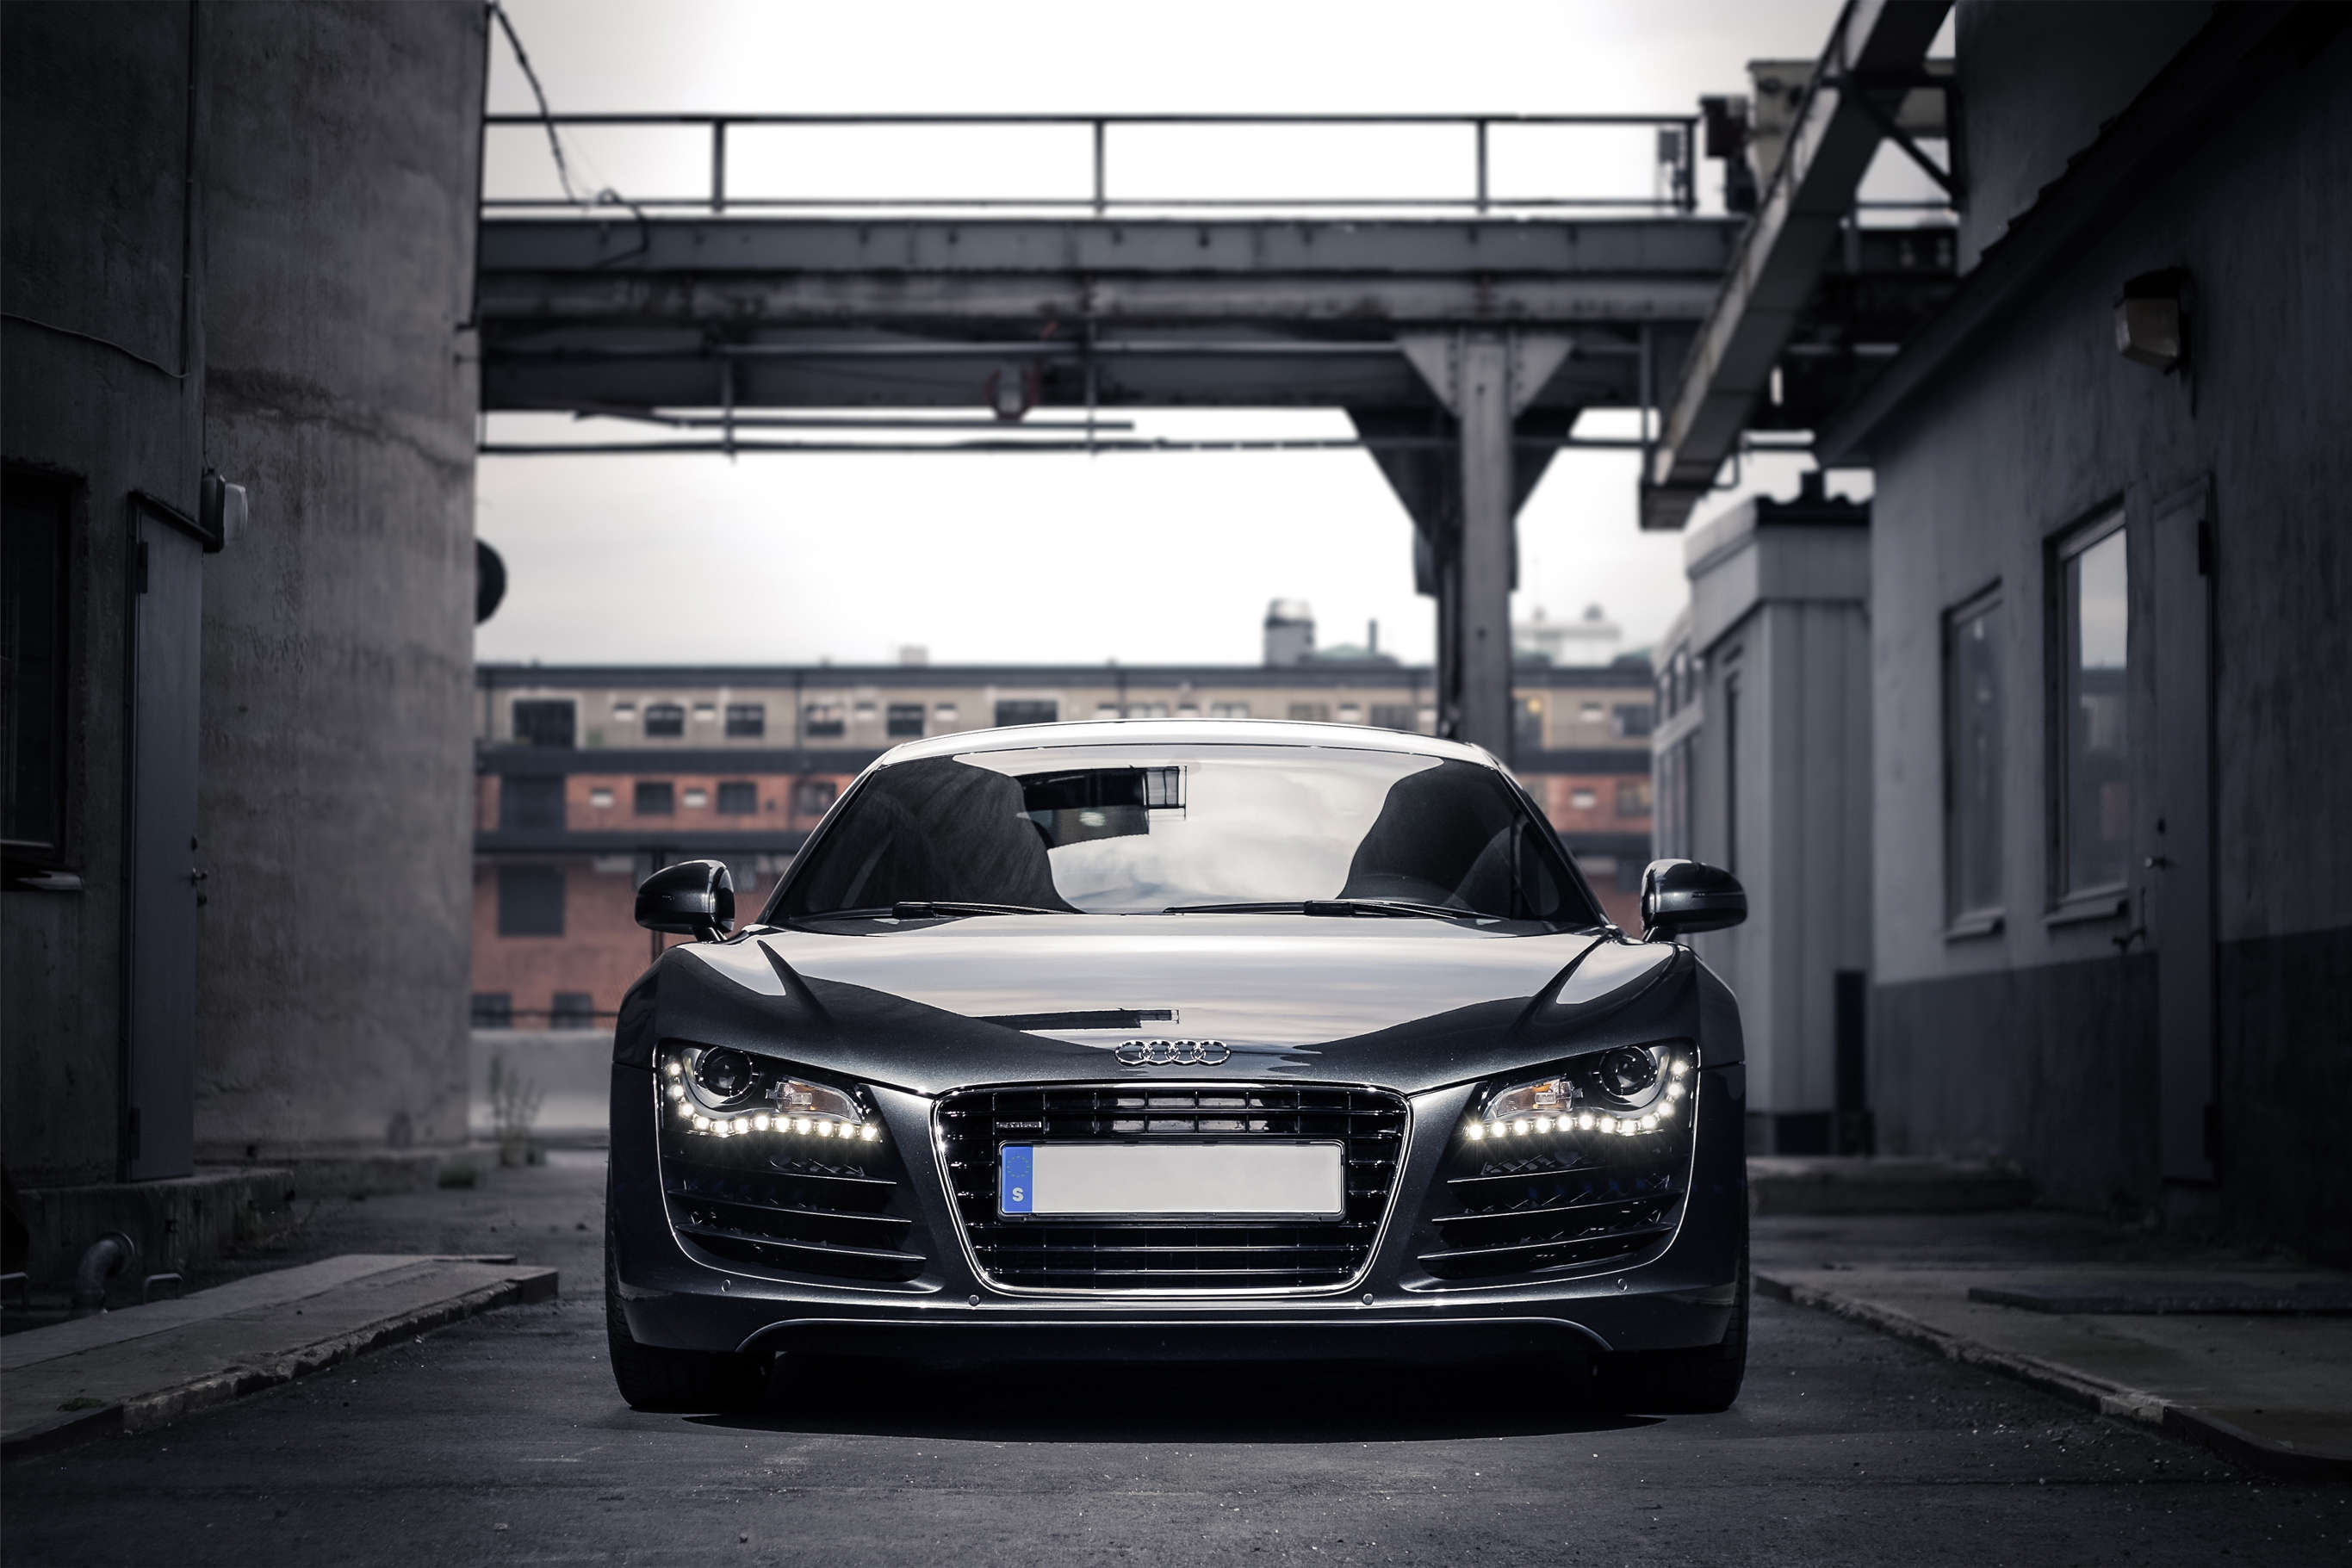 Top White Audi R8 Images Wallpapers Clytemnestra Fontes